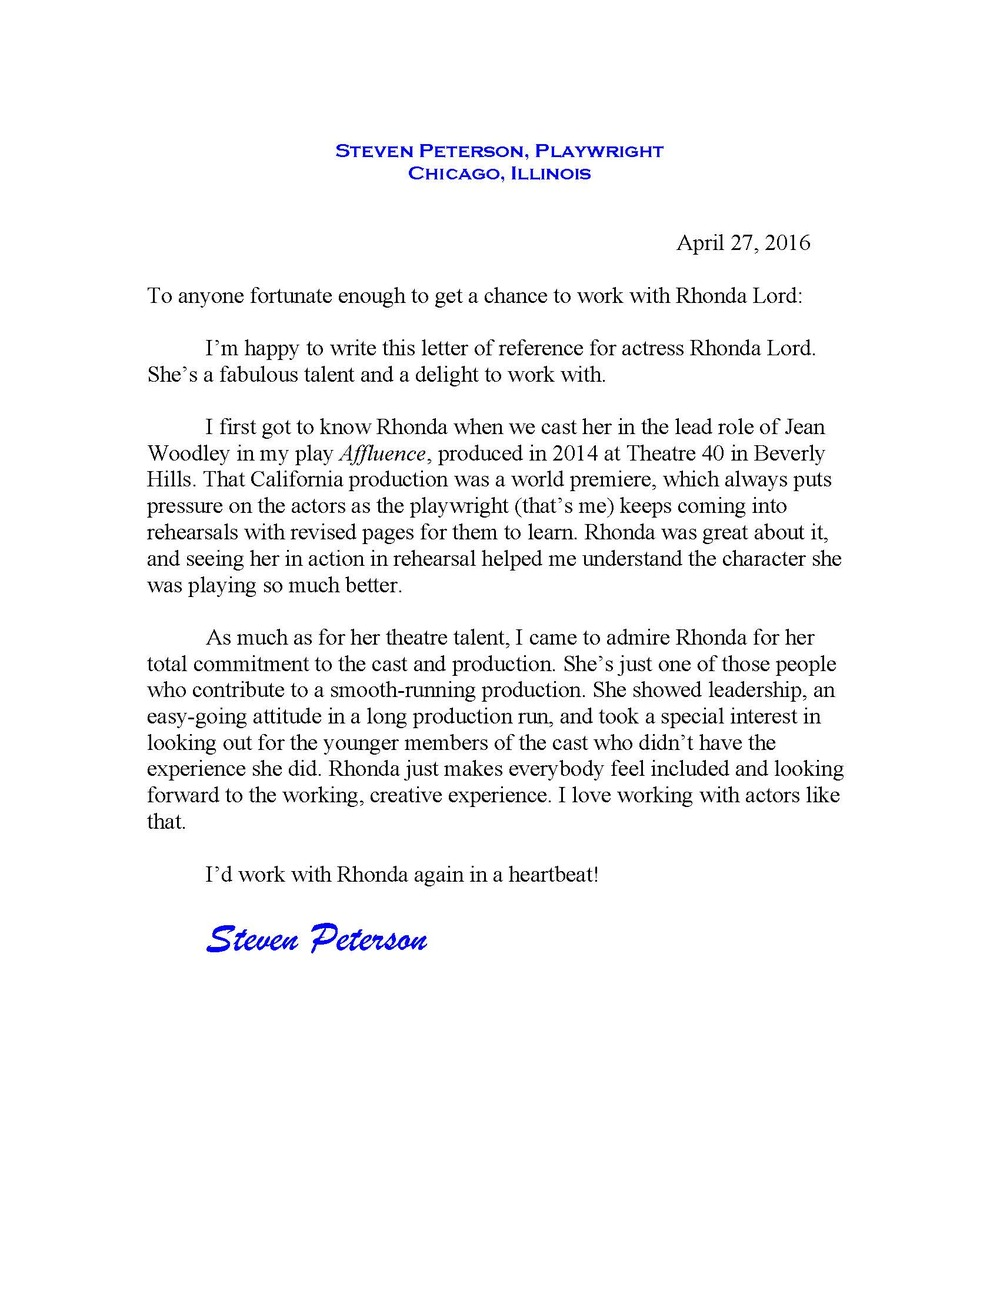 Lord reference letter from Steven.jpg